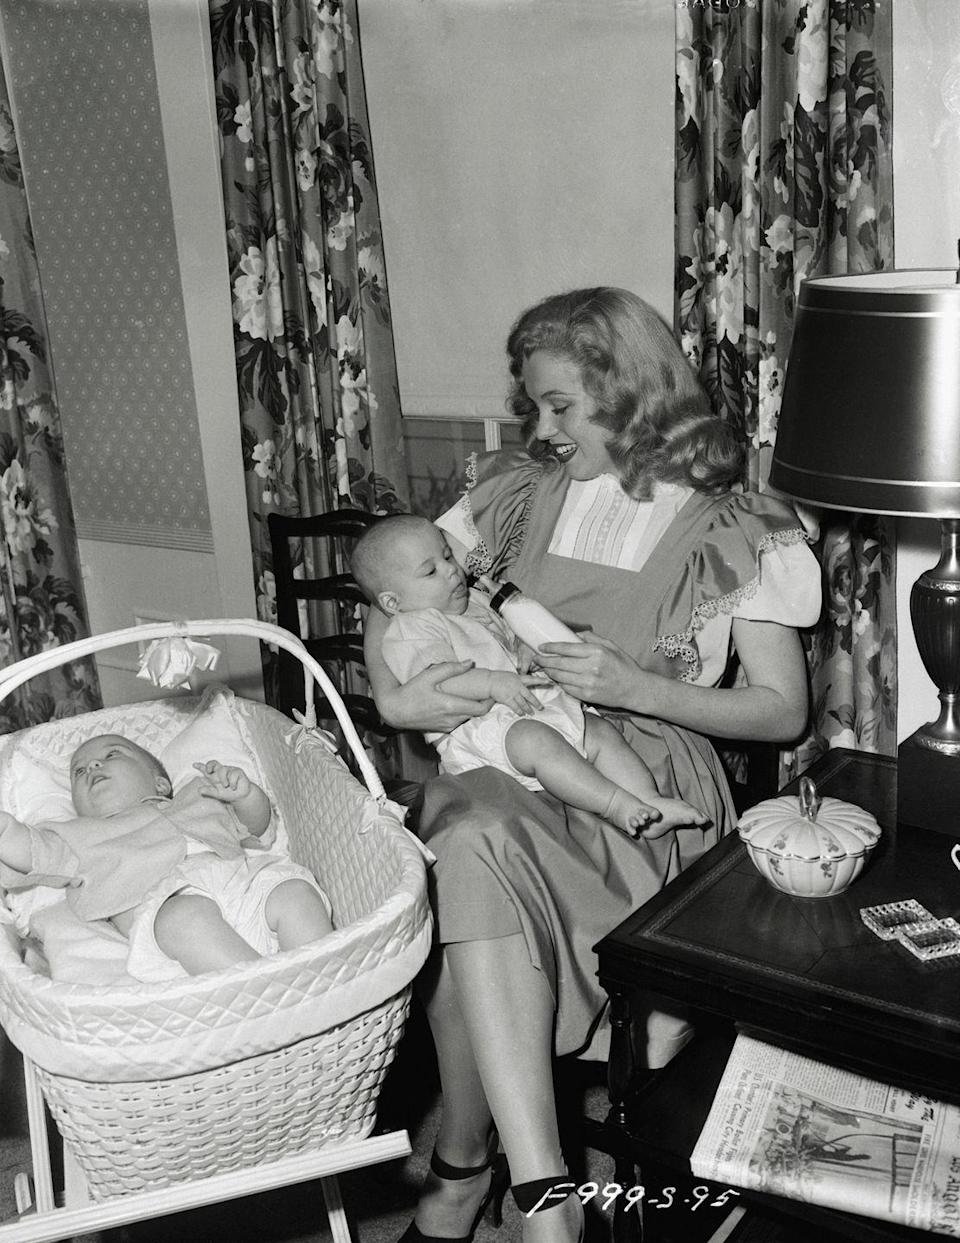 <p>Marilyn never had any children, but she looks like she would've been a natural if she did. </p>